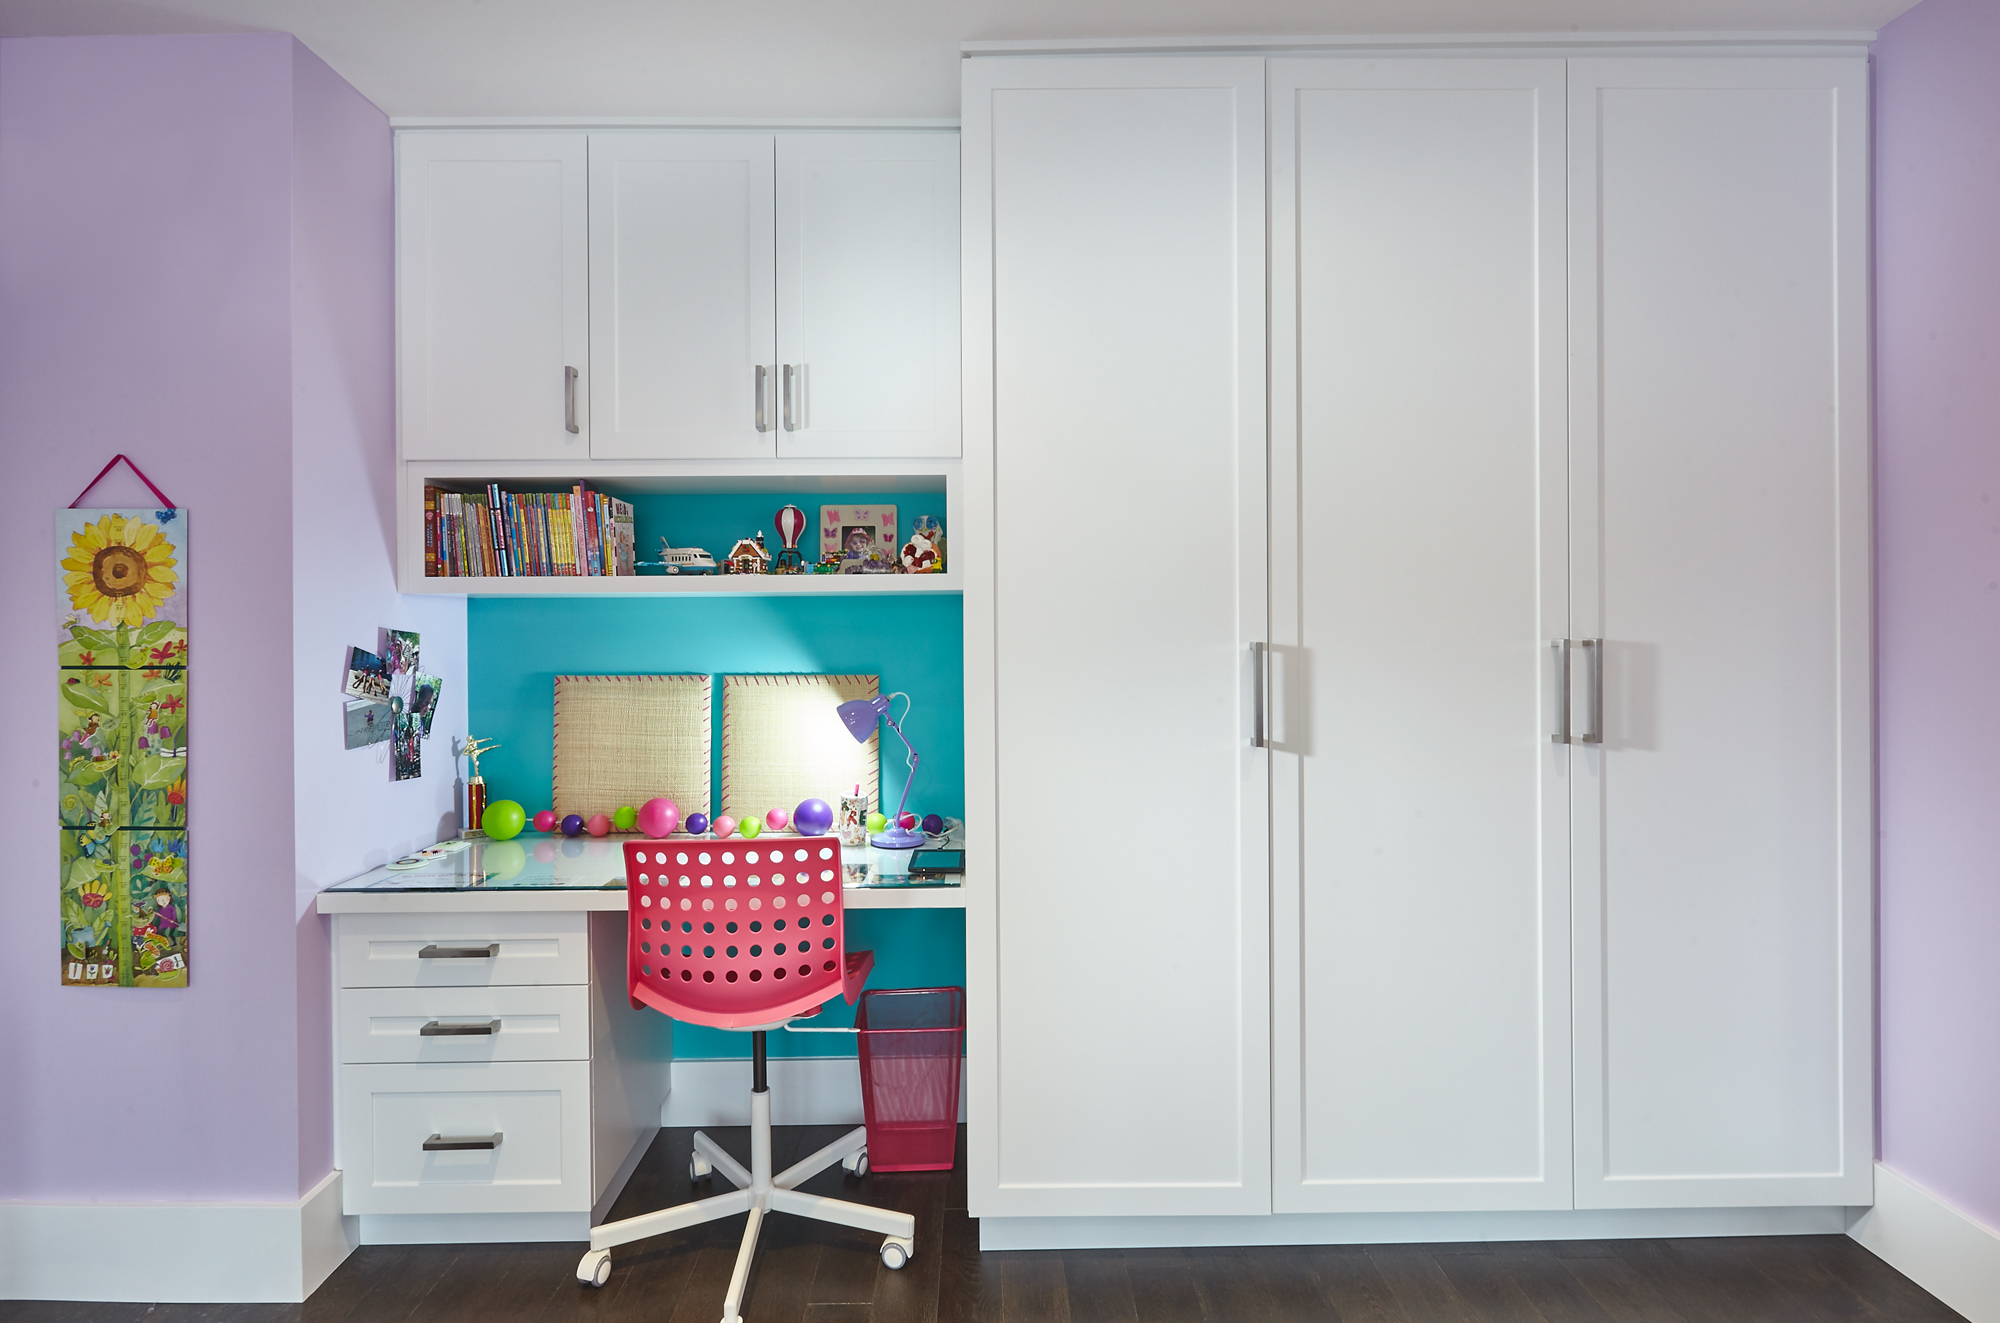 2 great kids bedroom built ins space solutions by - Built in cabinet designs bedroom ...